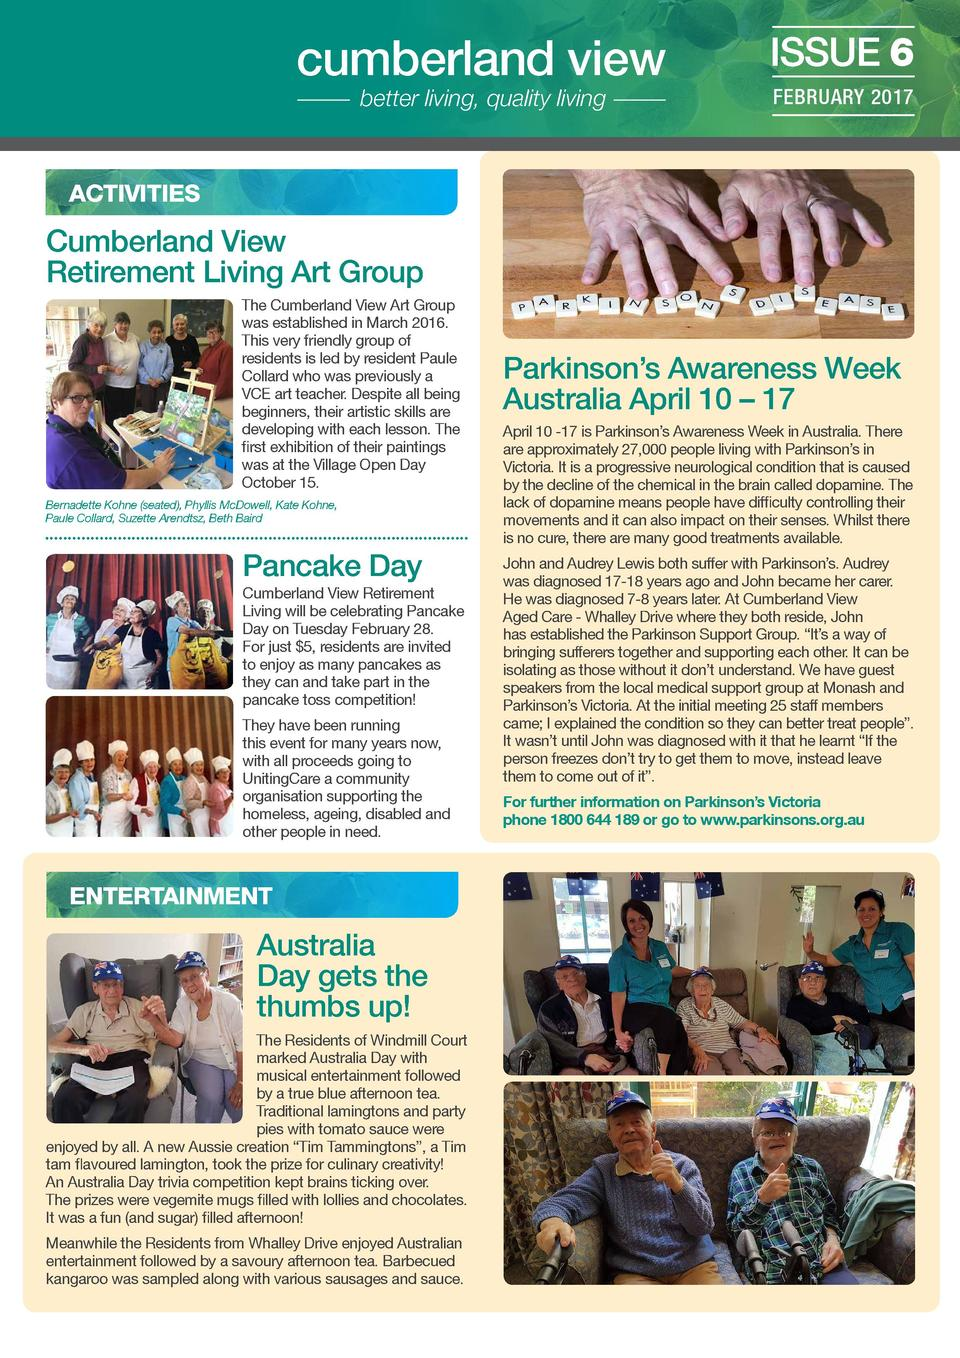 cumberland view better living, quality living  ISSUE 6 FEBRUARY 2017  ACTIVITIES  Cumberland View Retirement Living Art Gr...